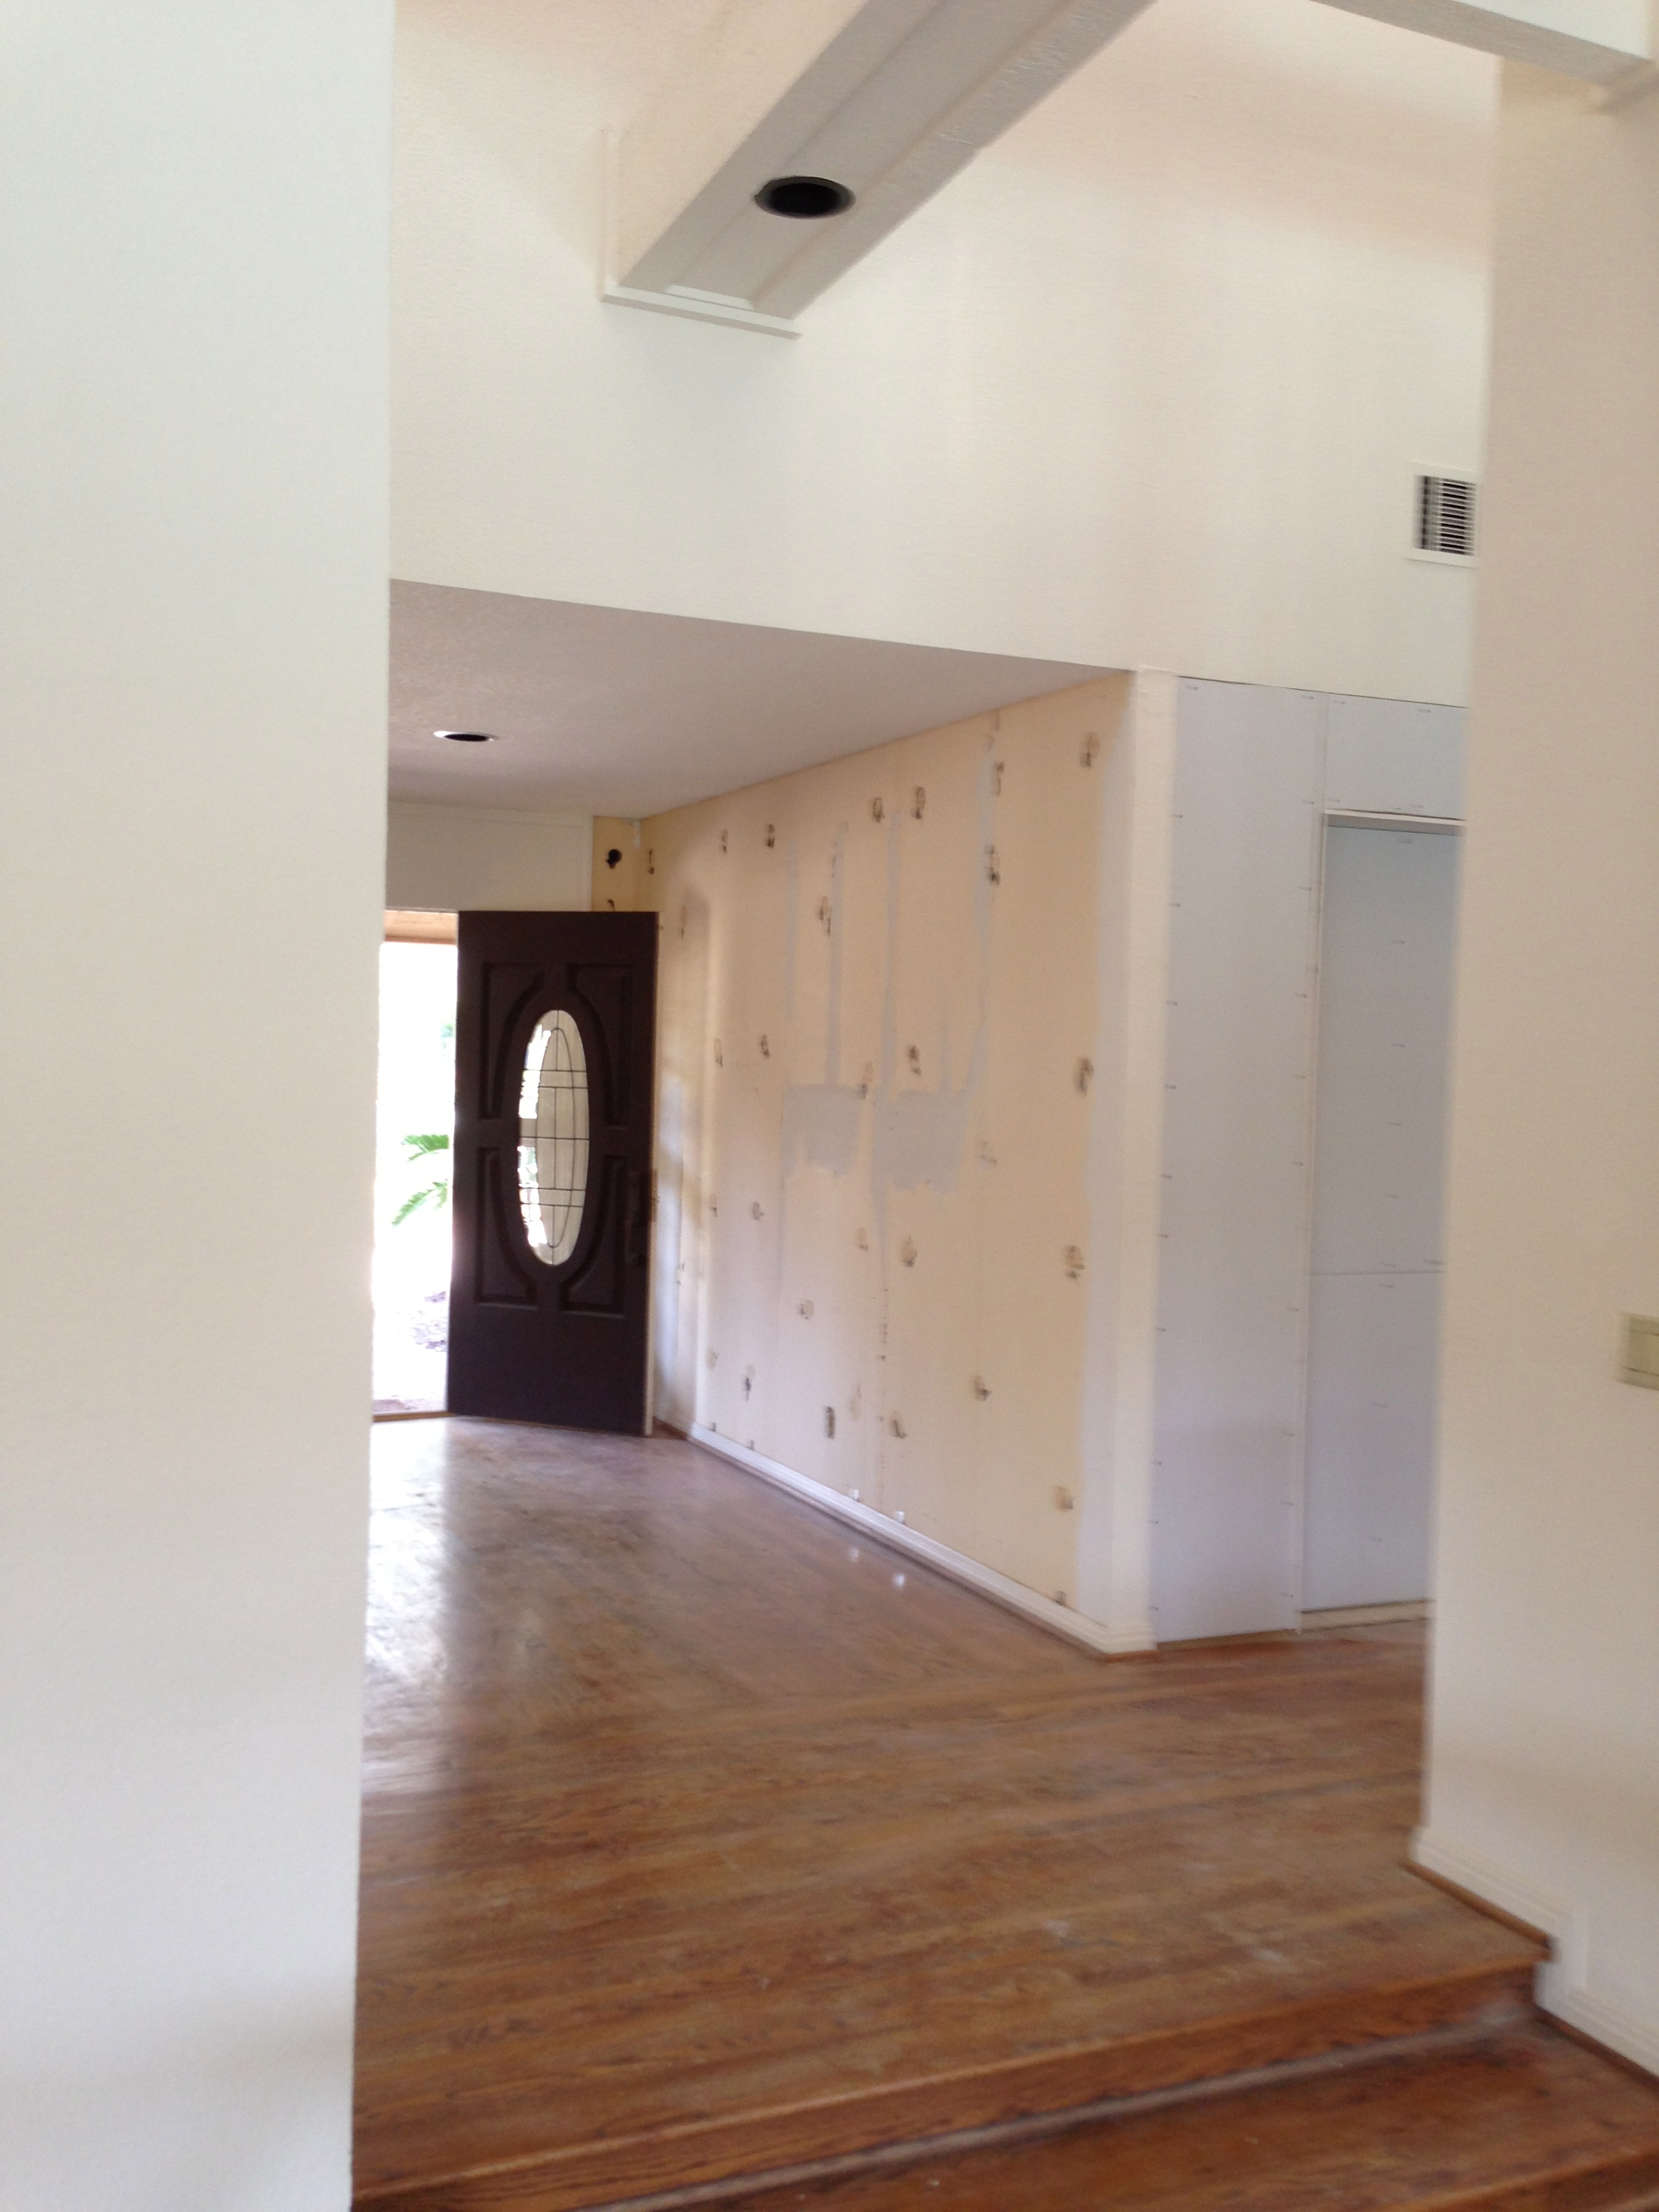 The mirrors are now all gone from the Entry Hall.